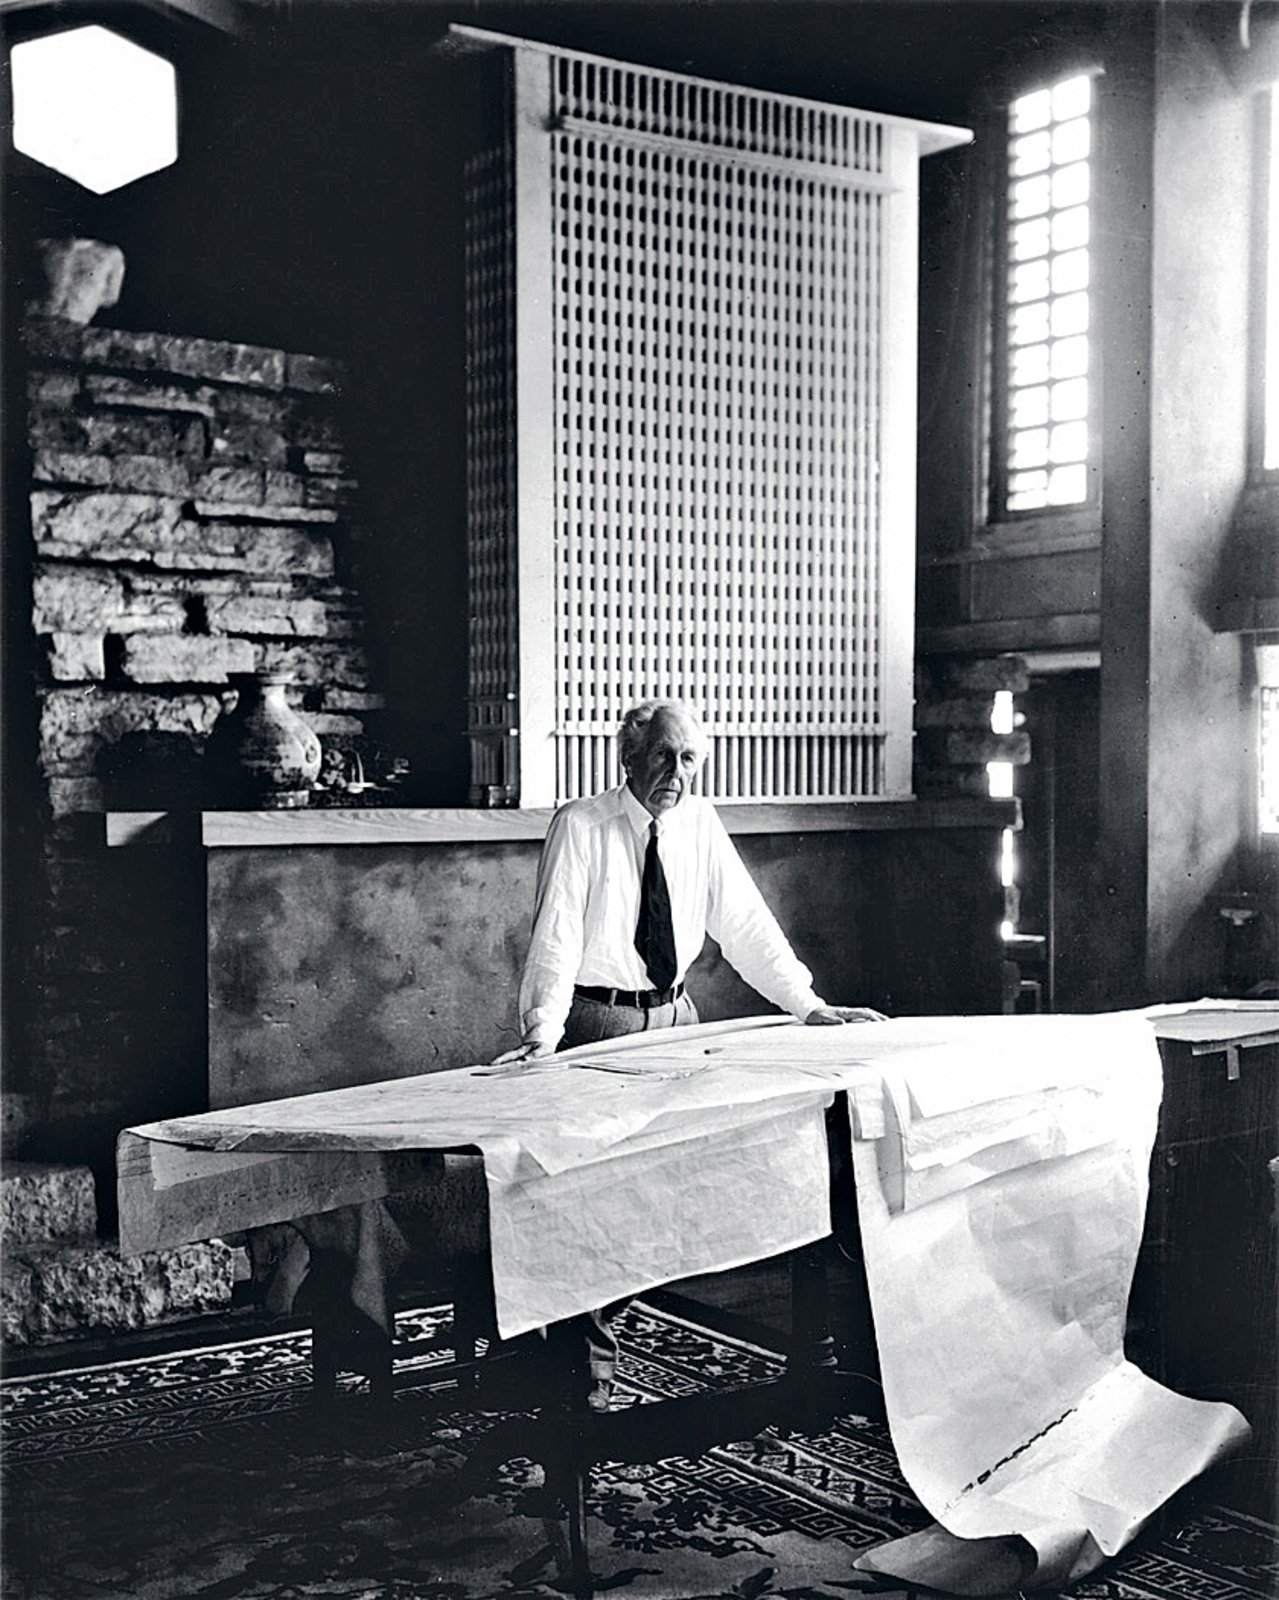 Dwell Reflects On Frank Lloyd Wright In Honor Of The 150th